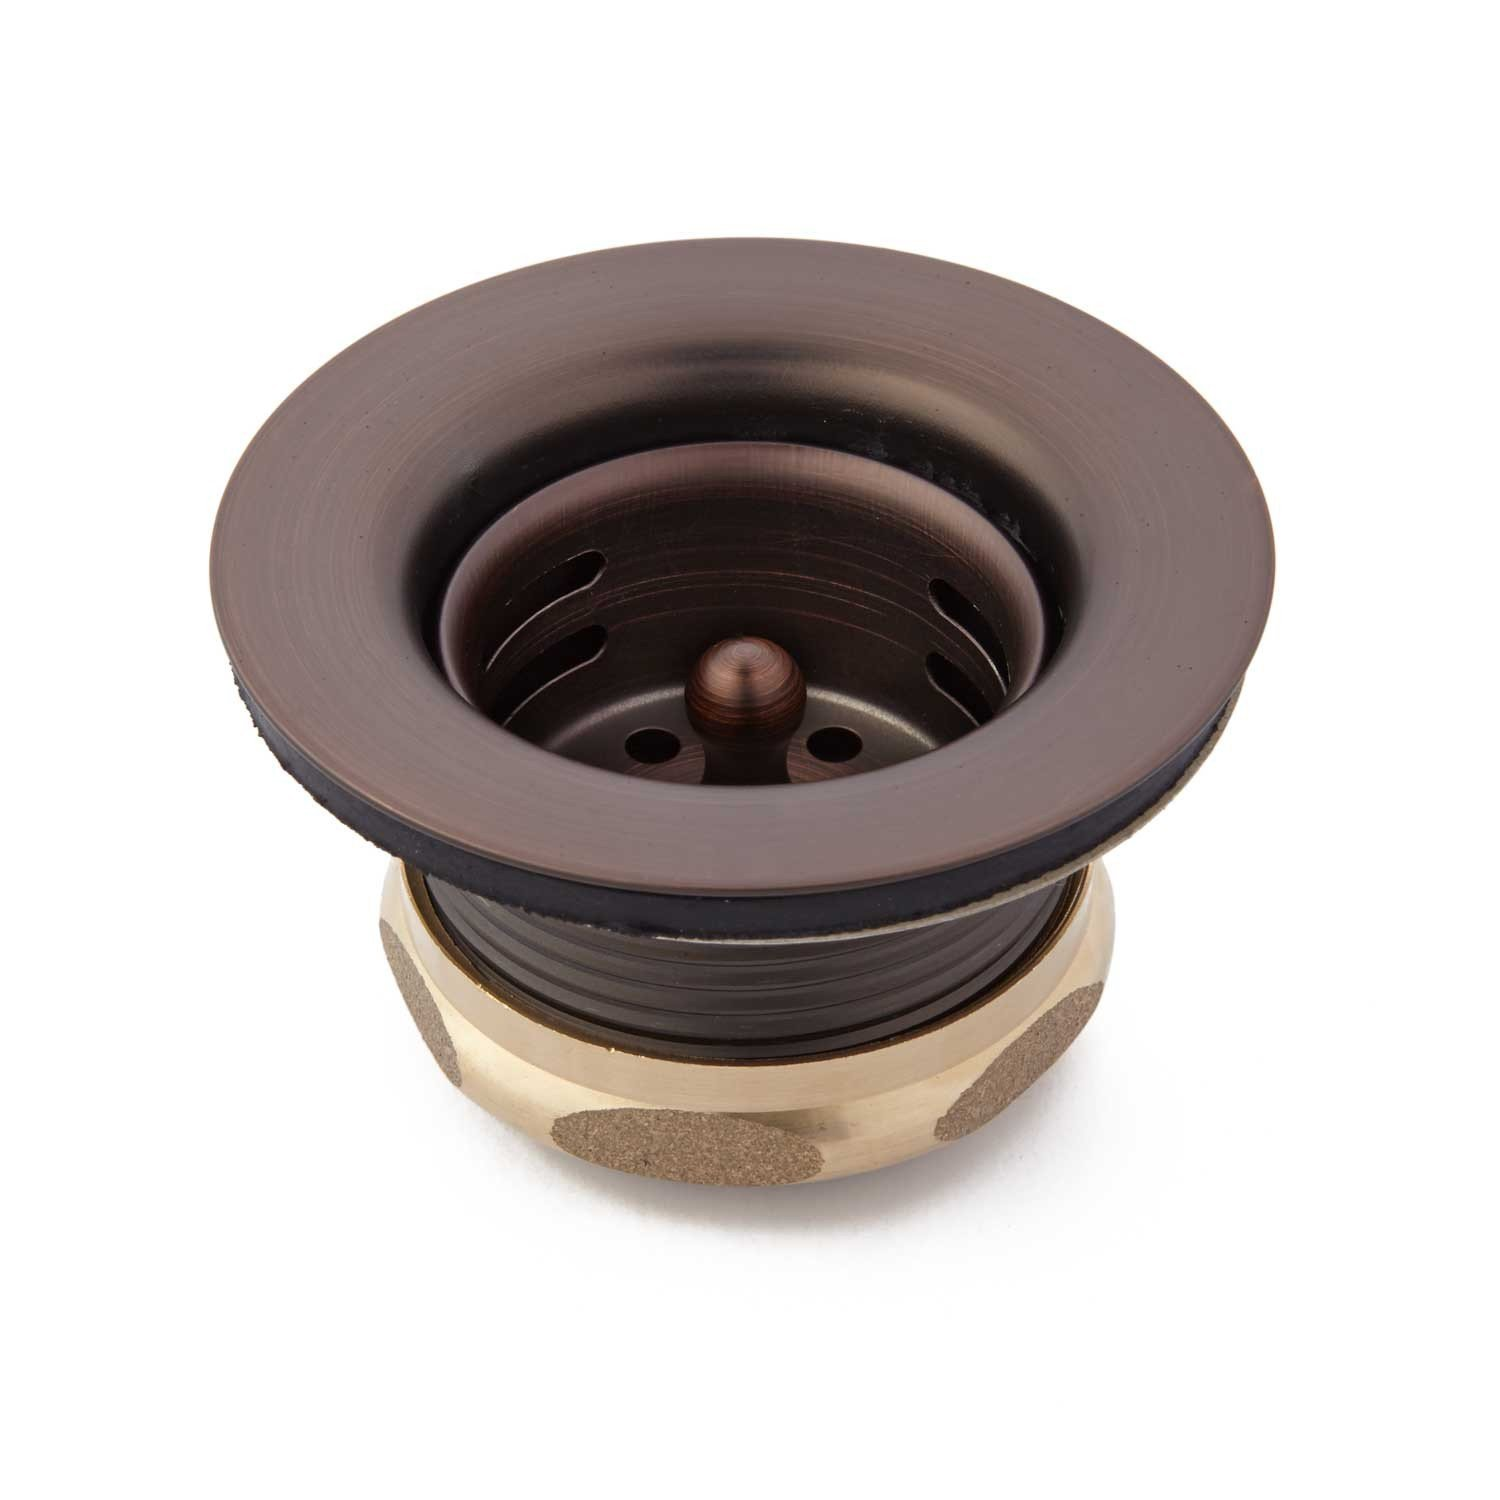 Naiture 1-3 / 4'' Bars Strainer With Lift Stopper In Oil Rubbed Bronze Finish